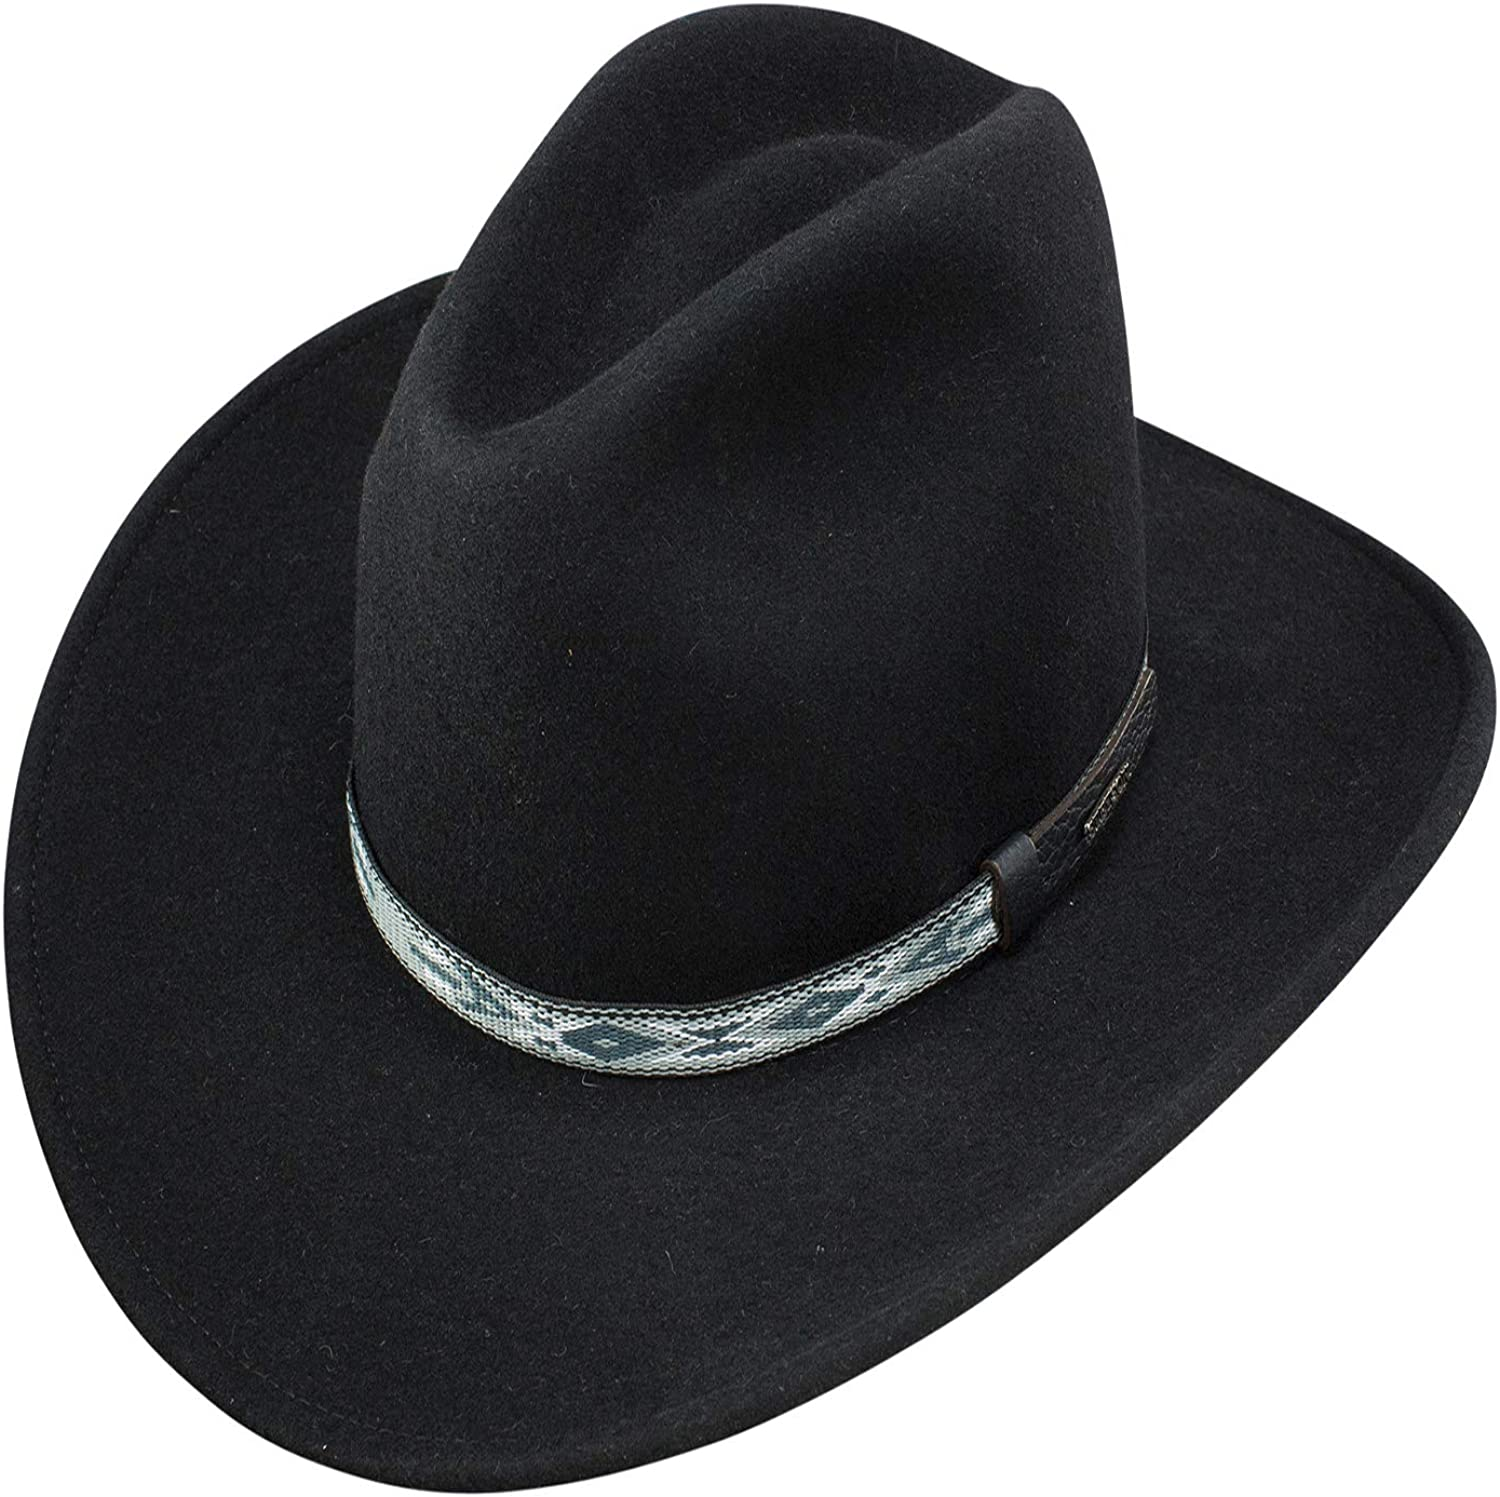 Sales of SALE items from new works Stetson Men's Limited time cheap sale Granger Crushable Wool Leather Cow Hatband Western